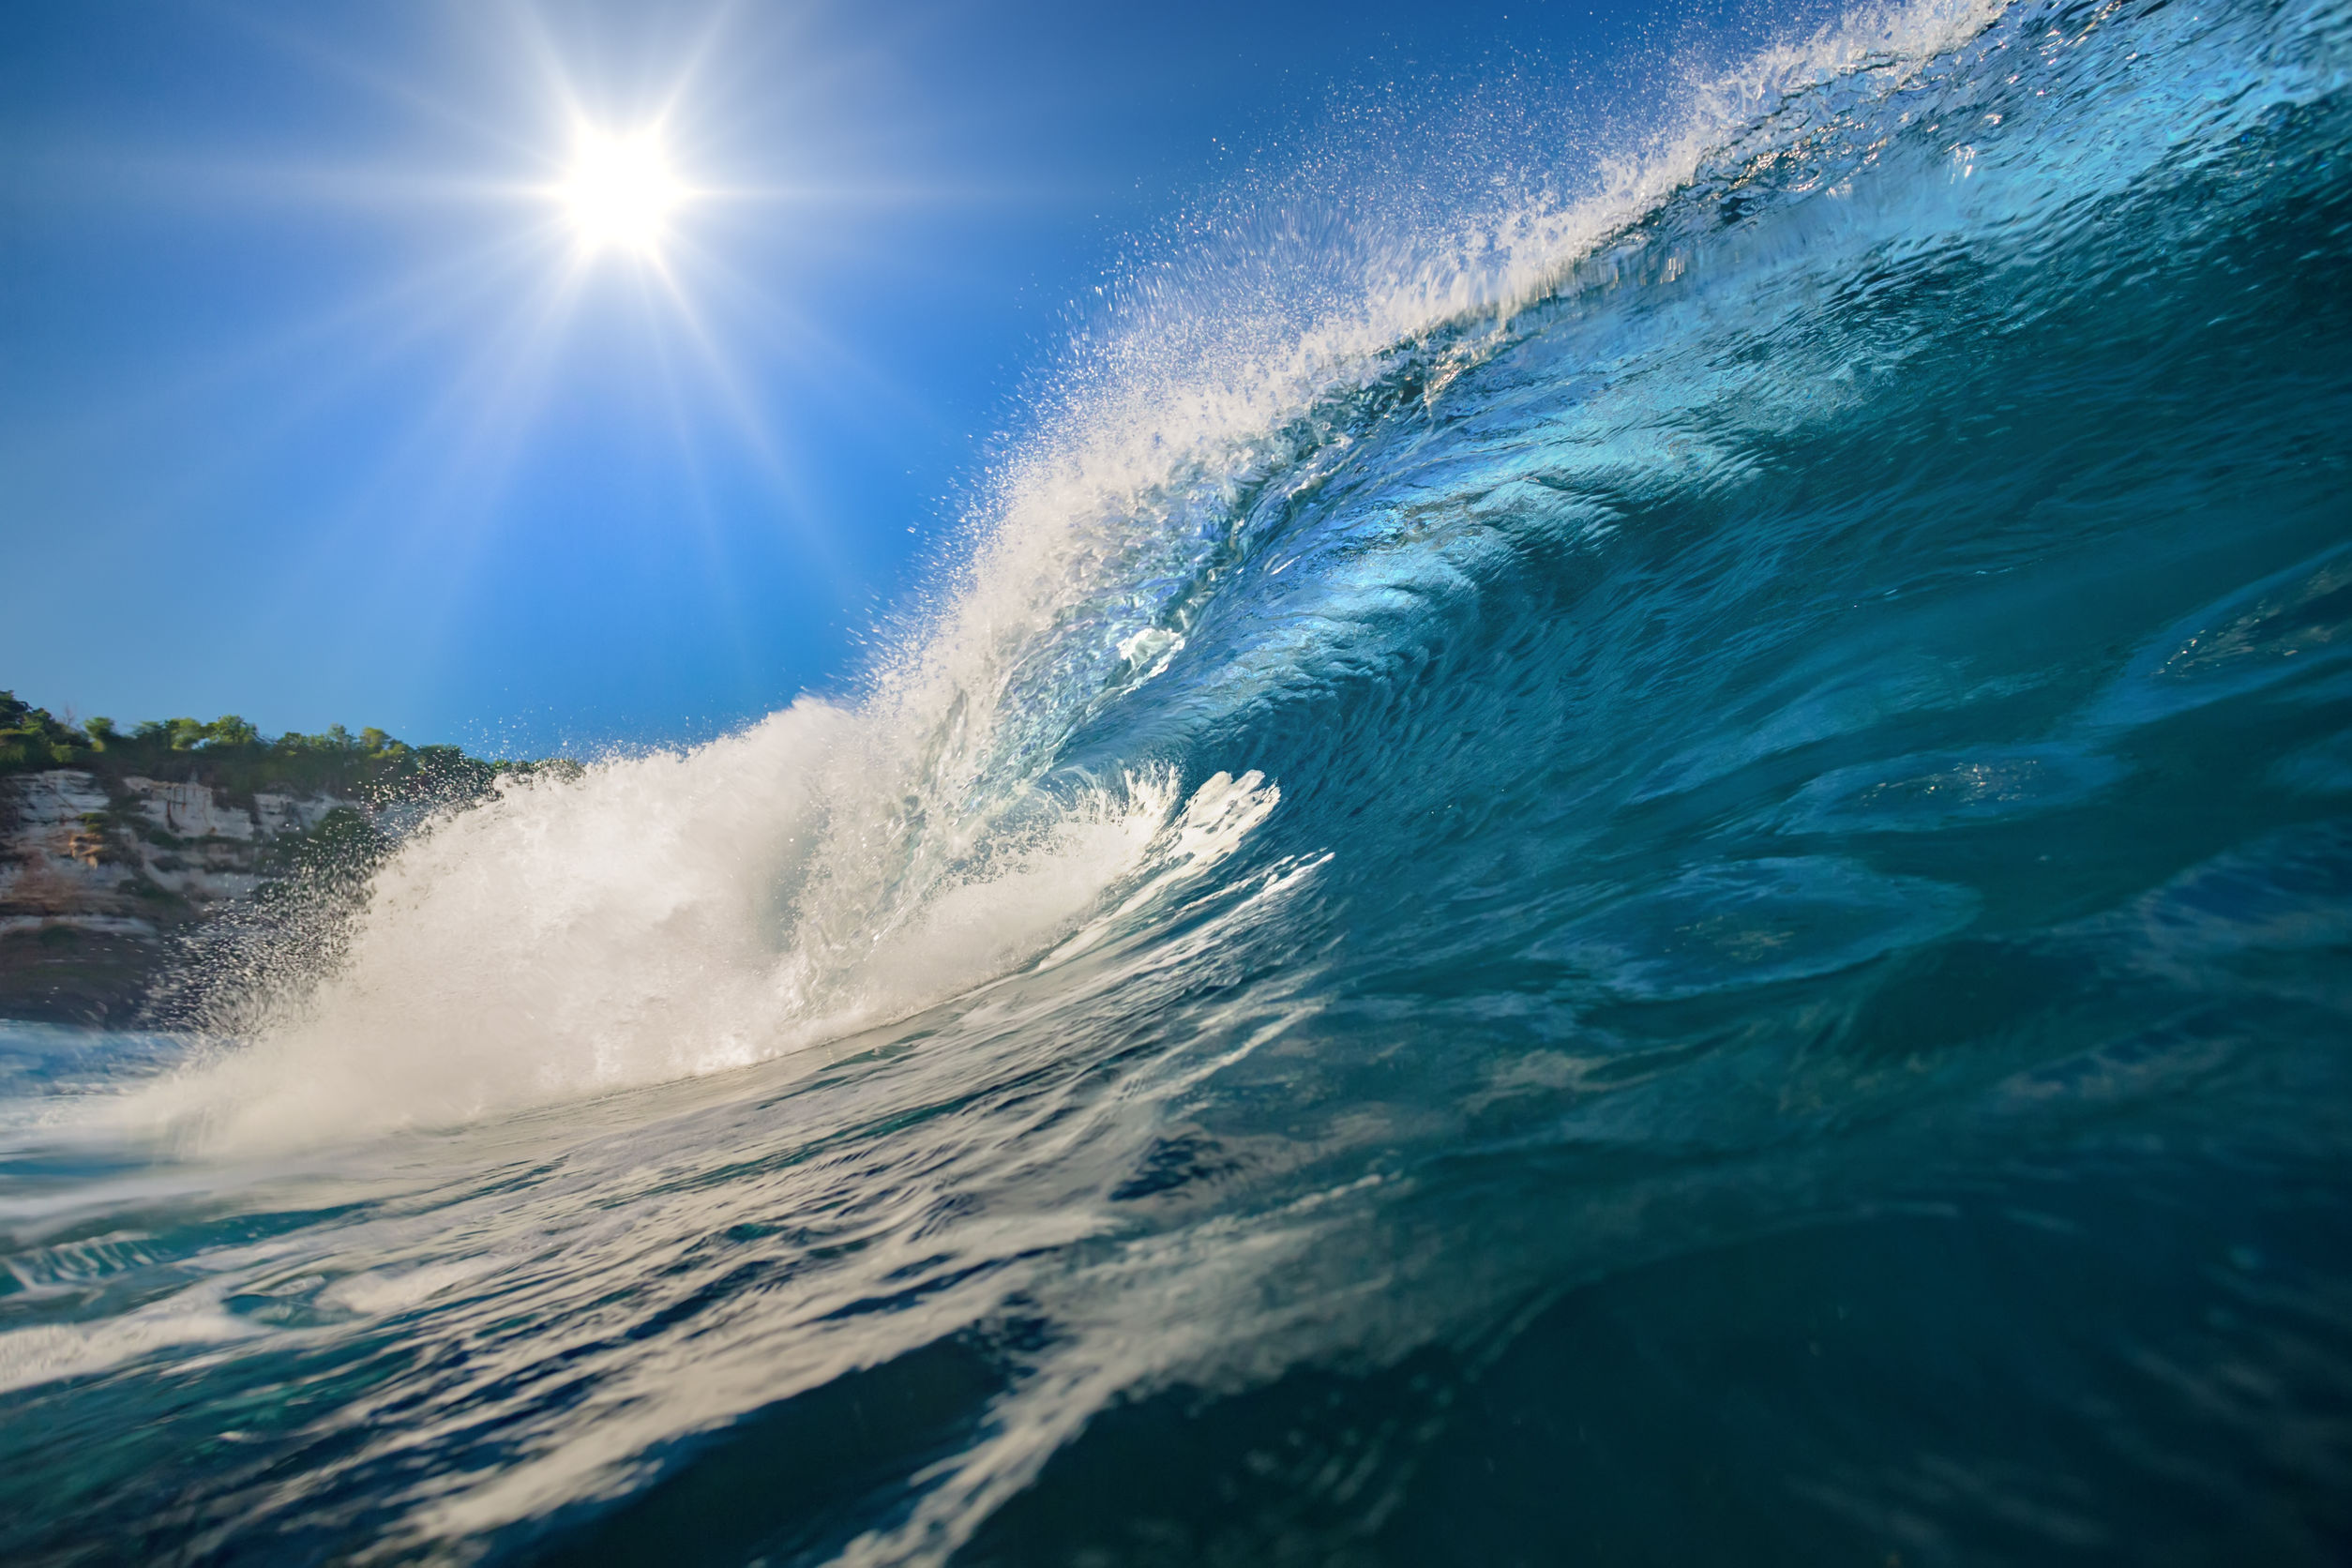 Blue Wave Rising with Sun and Blue Skys Above and a Bit of Shore and hillside in background